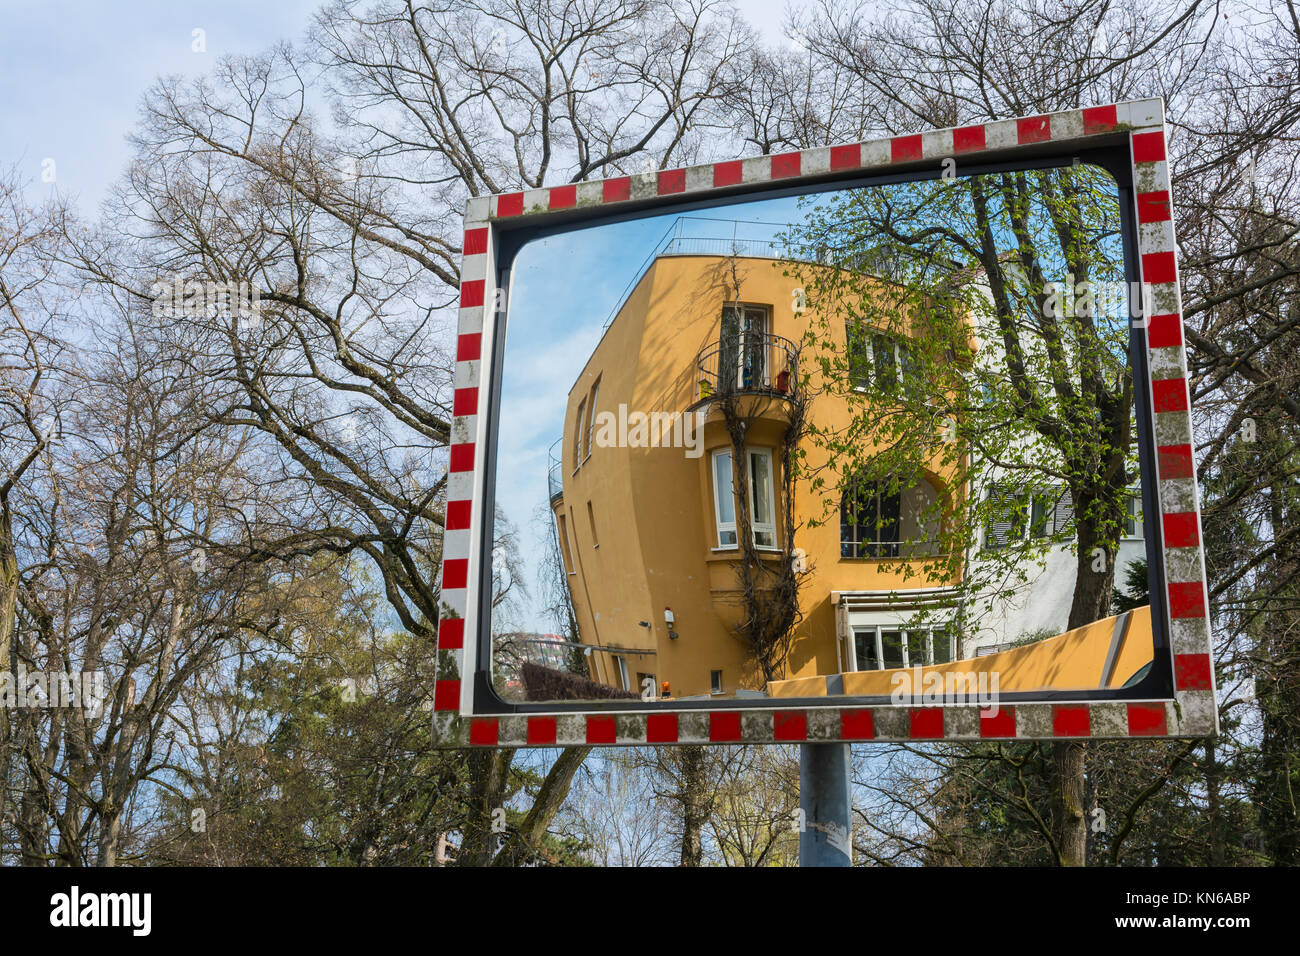 Warped House Reflection in Safety Reflector Abstract - Stock Image